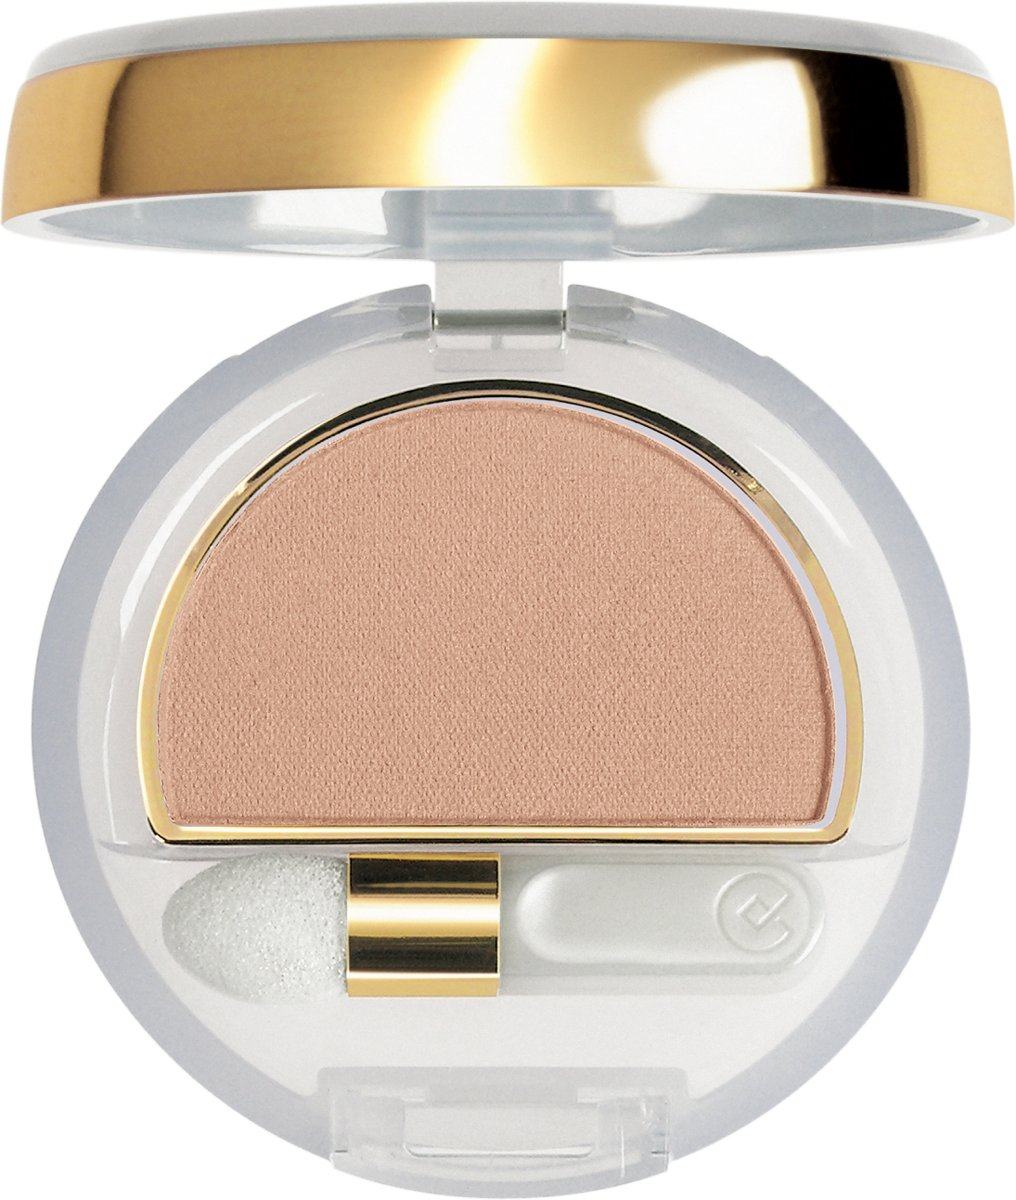 Collistar Silk Effect Eyeshadow - 63 Cameo - Oogschaduw